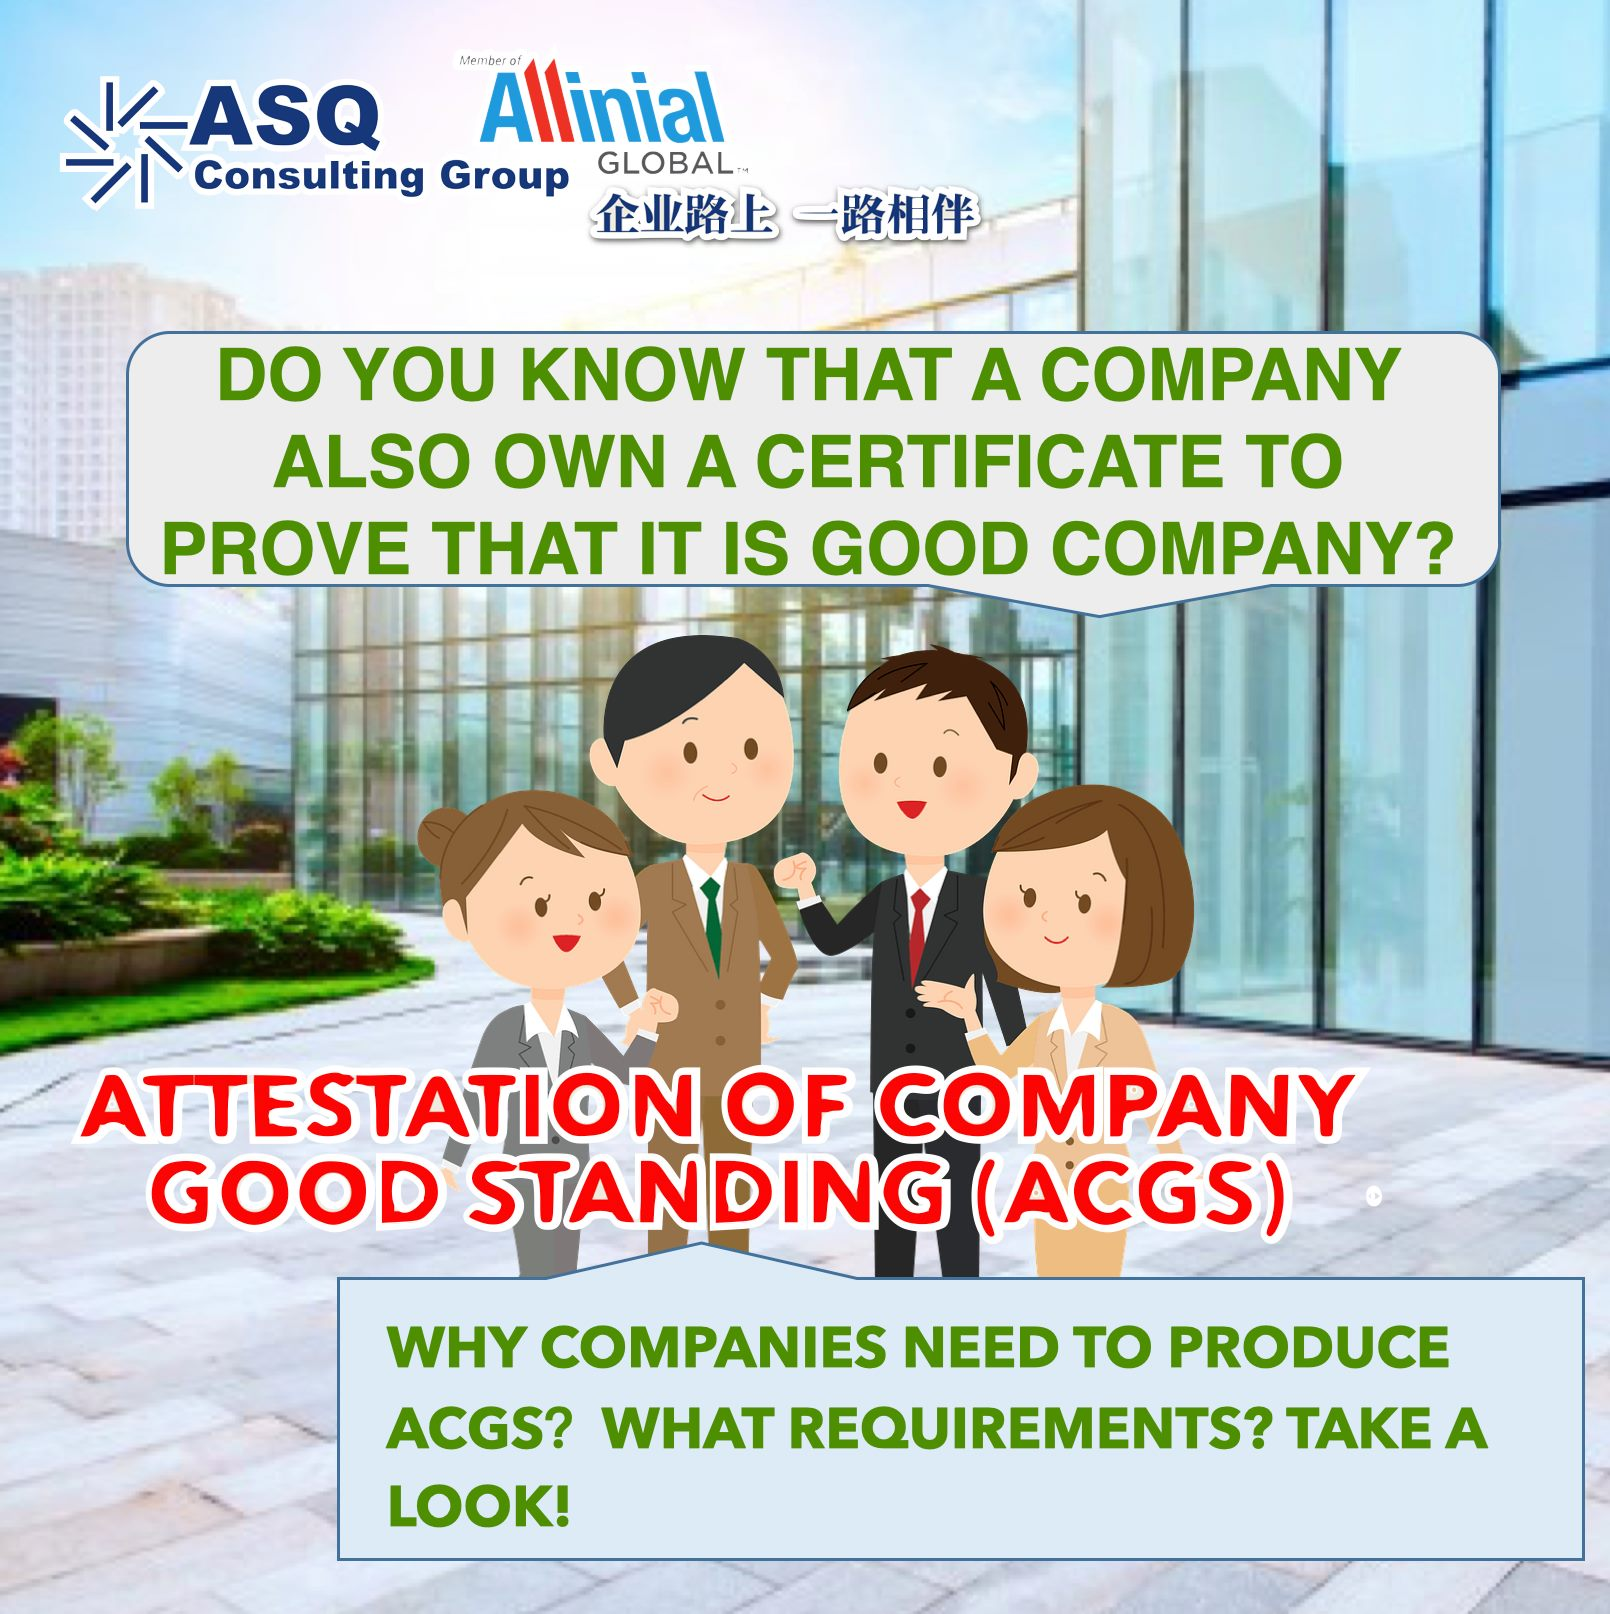 Do you know that a company also own a certificate to prove that It is a good company?